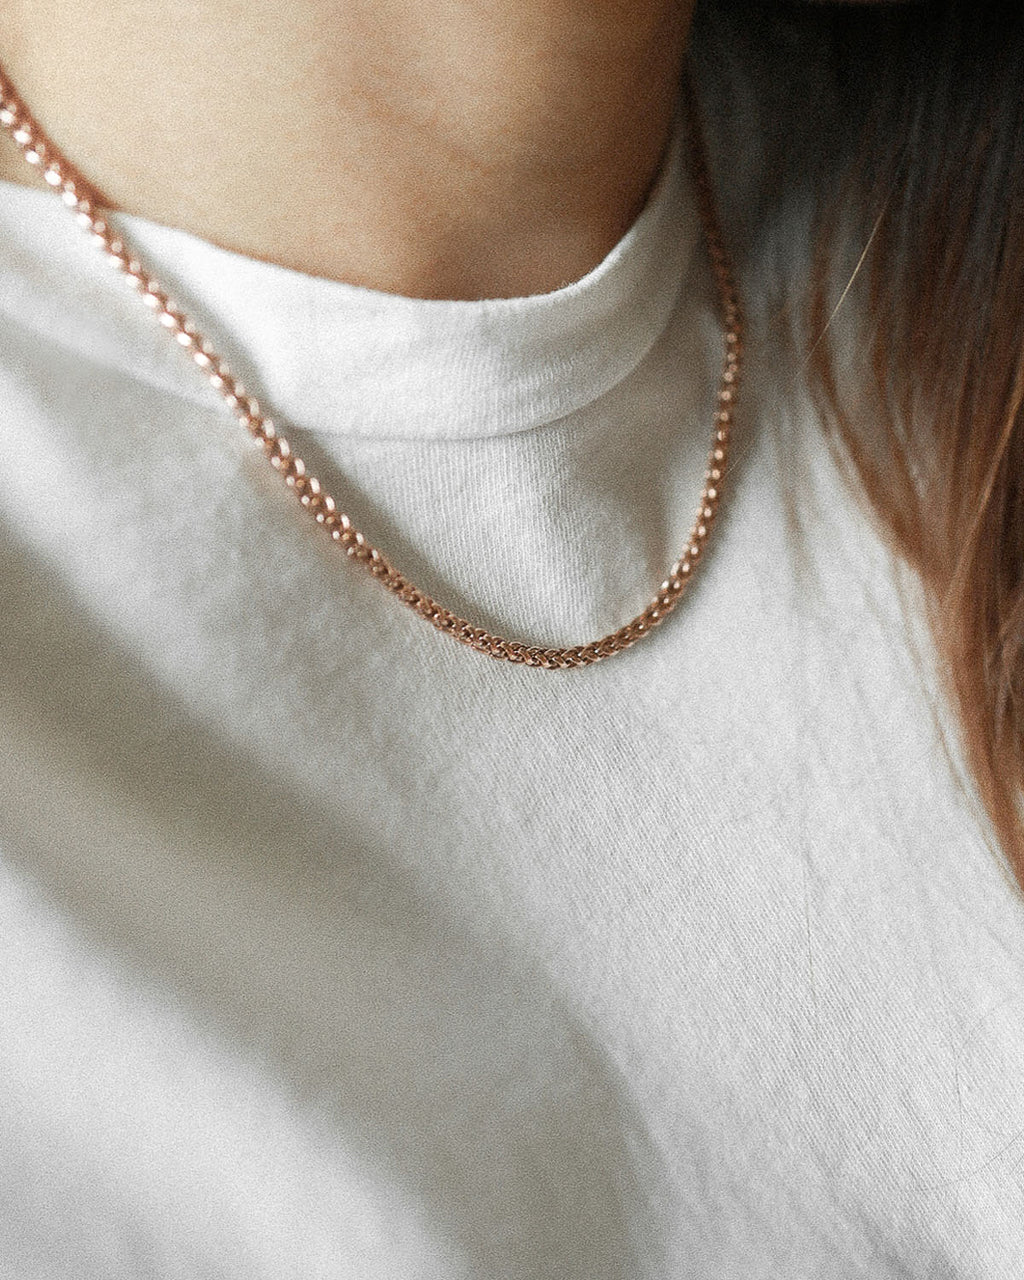 Simple rose gold necklace worn with a simple white tee @thehexad